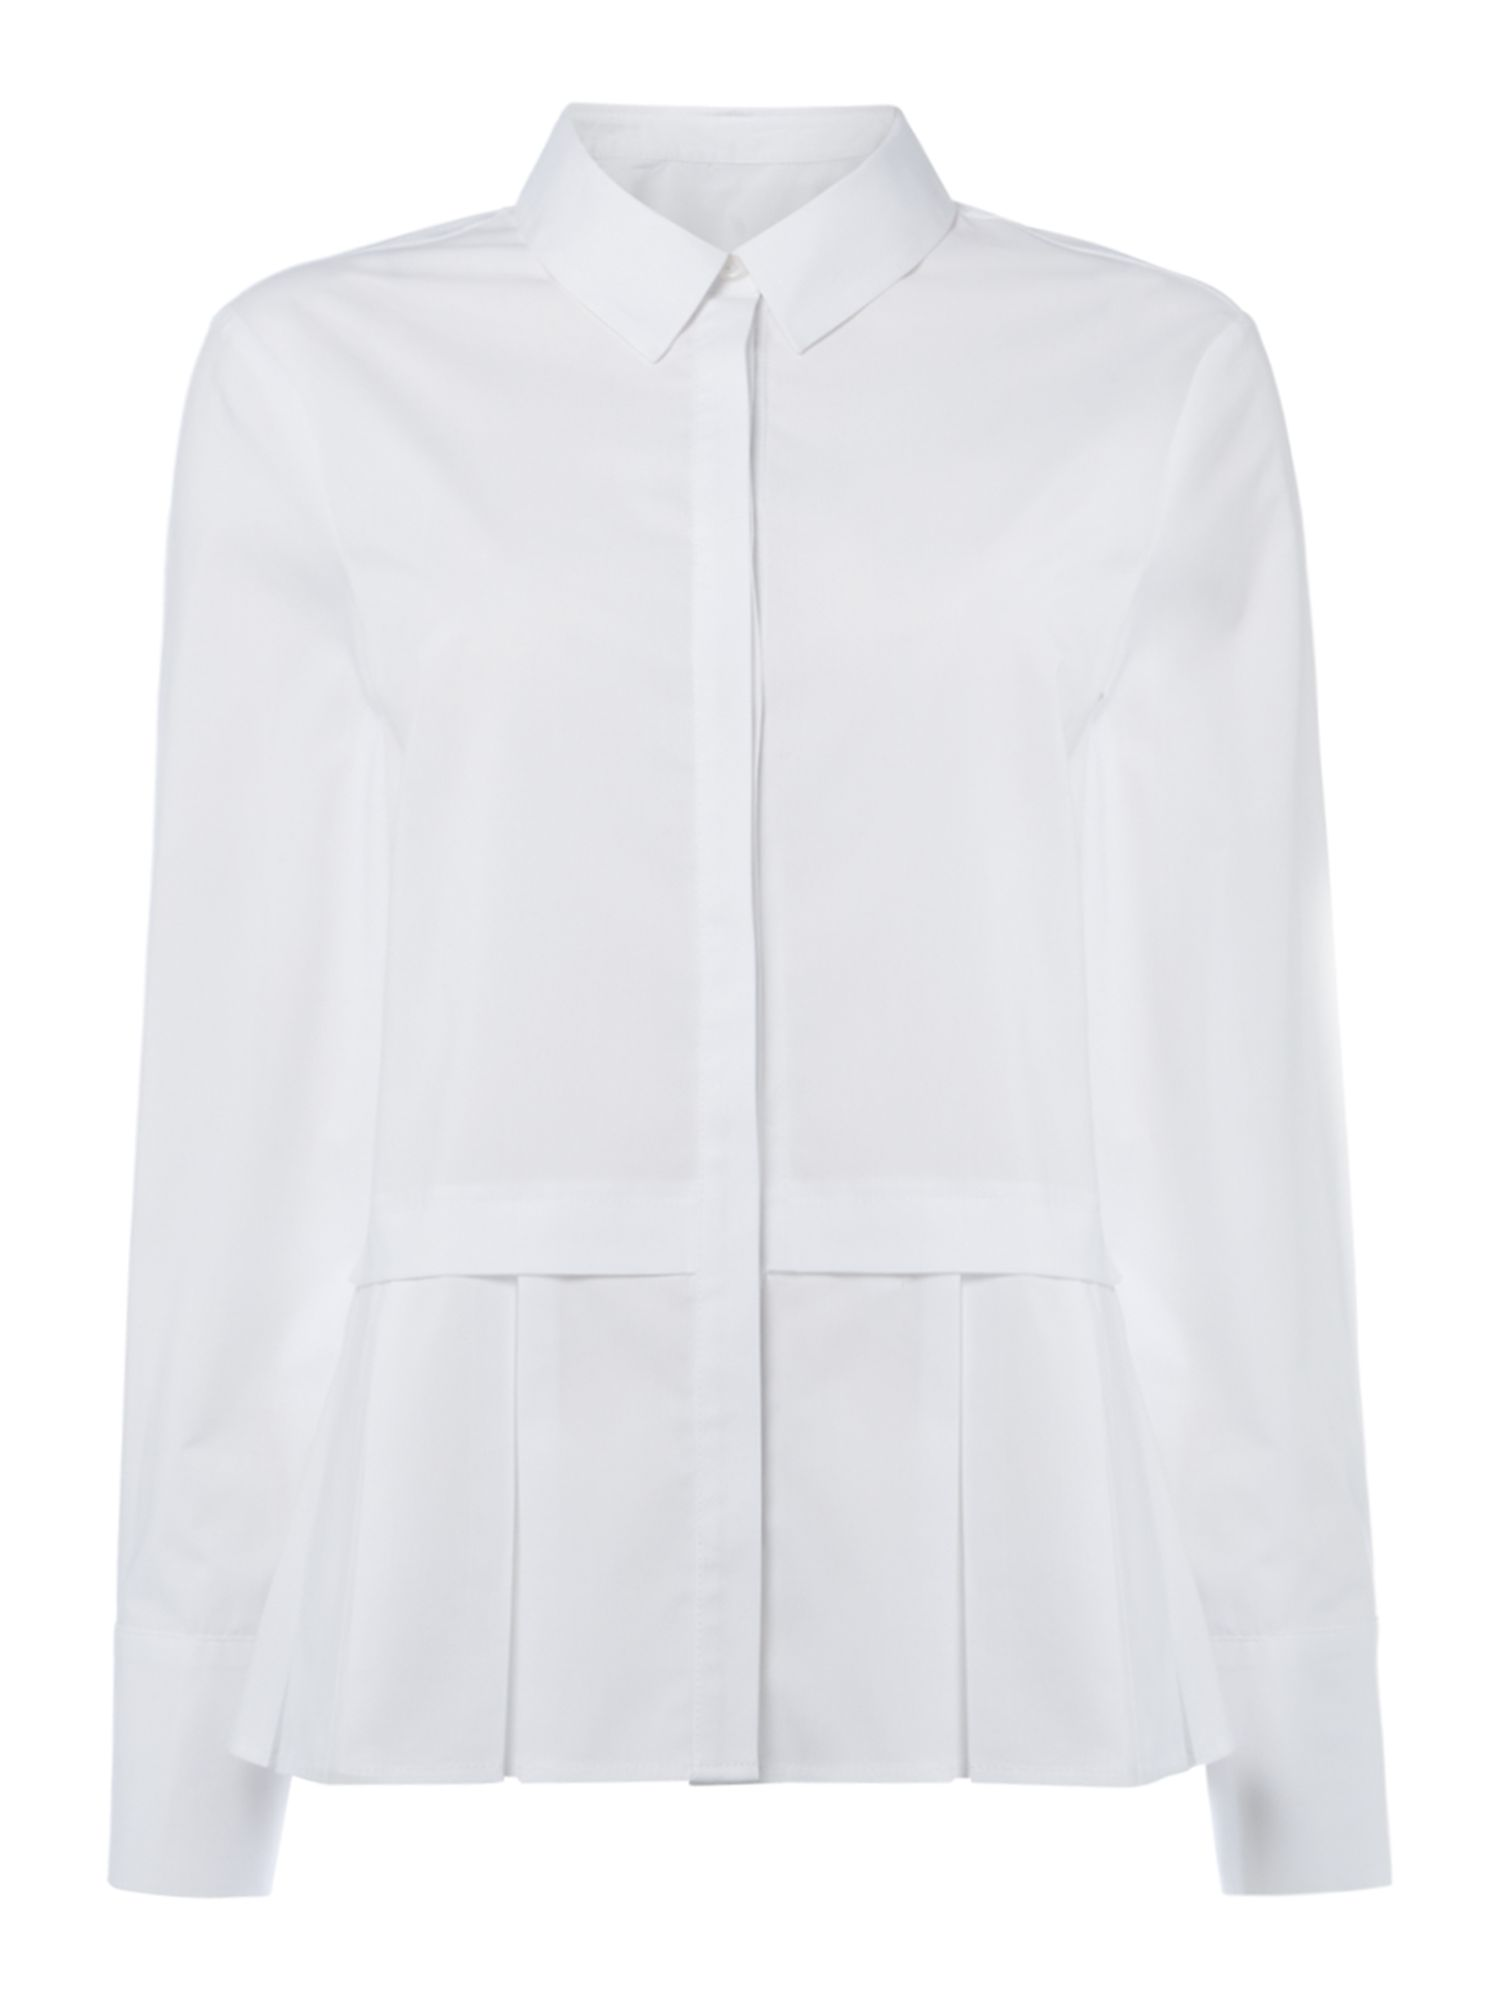 Linea Delta pleat hem shirt, White